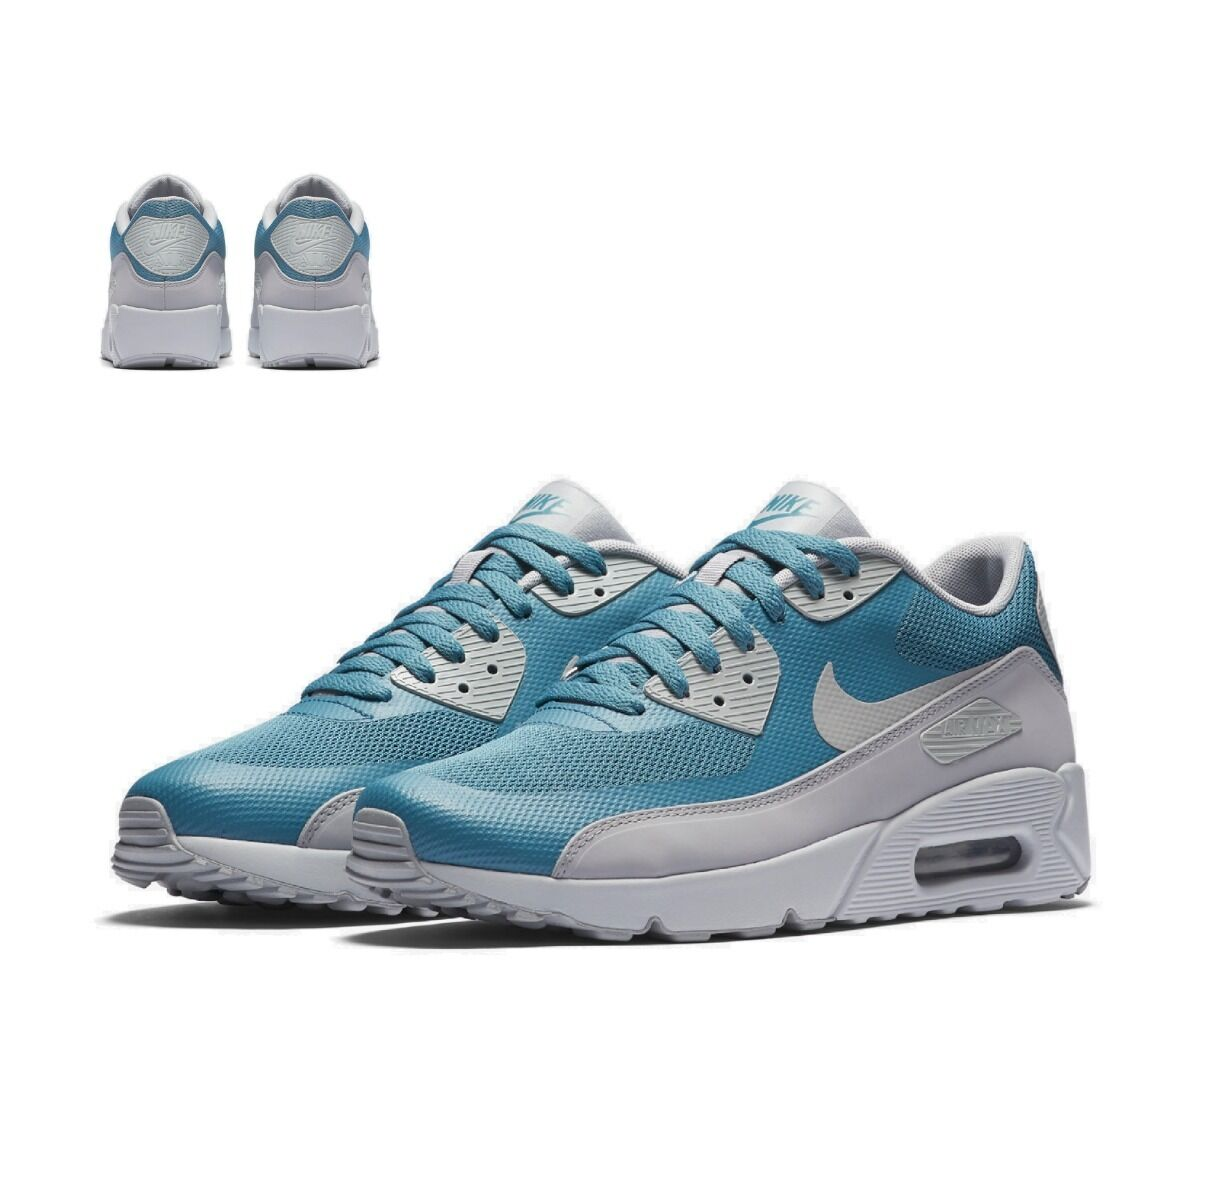 NIKE AIR MAX 90 ULTRA 2.0 ESSENTIAL MENS TRAINER TRAINER TRAINER SHOE BLUES GREYS SIZE 7 - 11 5d02ae